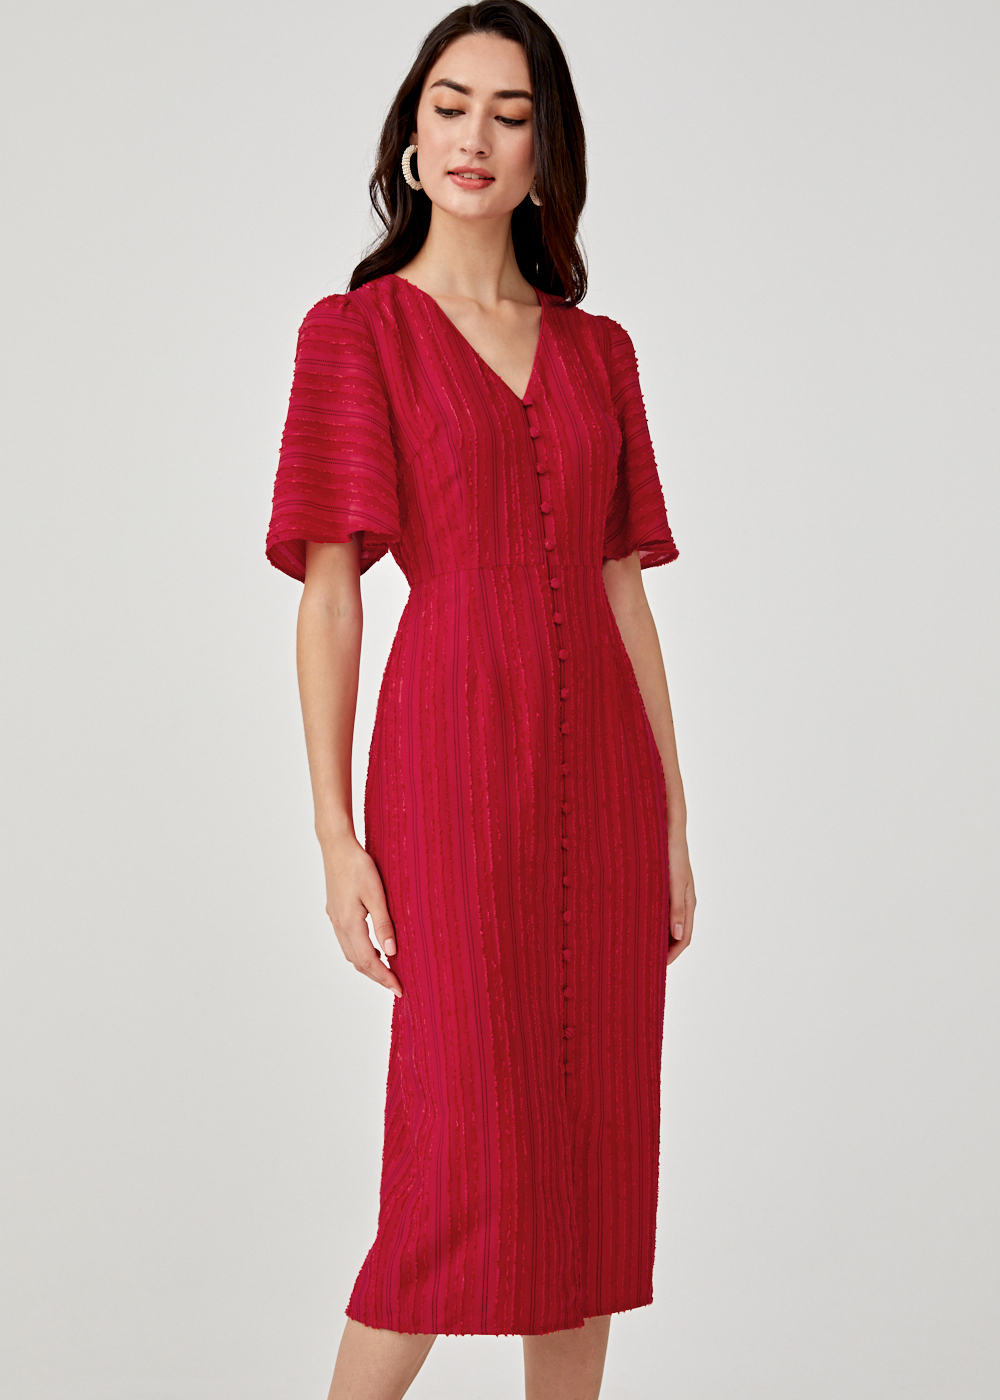 Petria Jacquard Dress